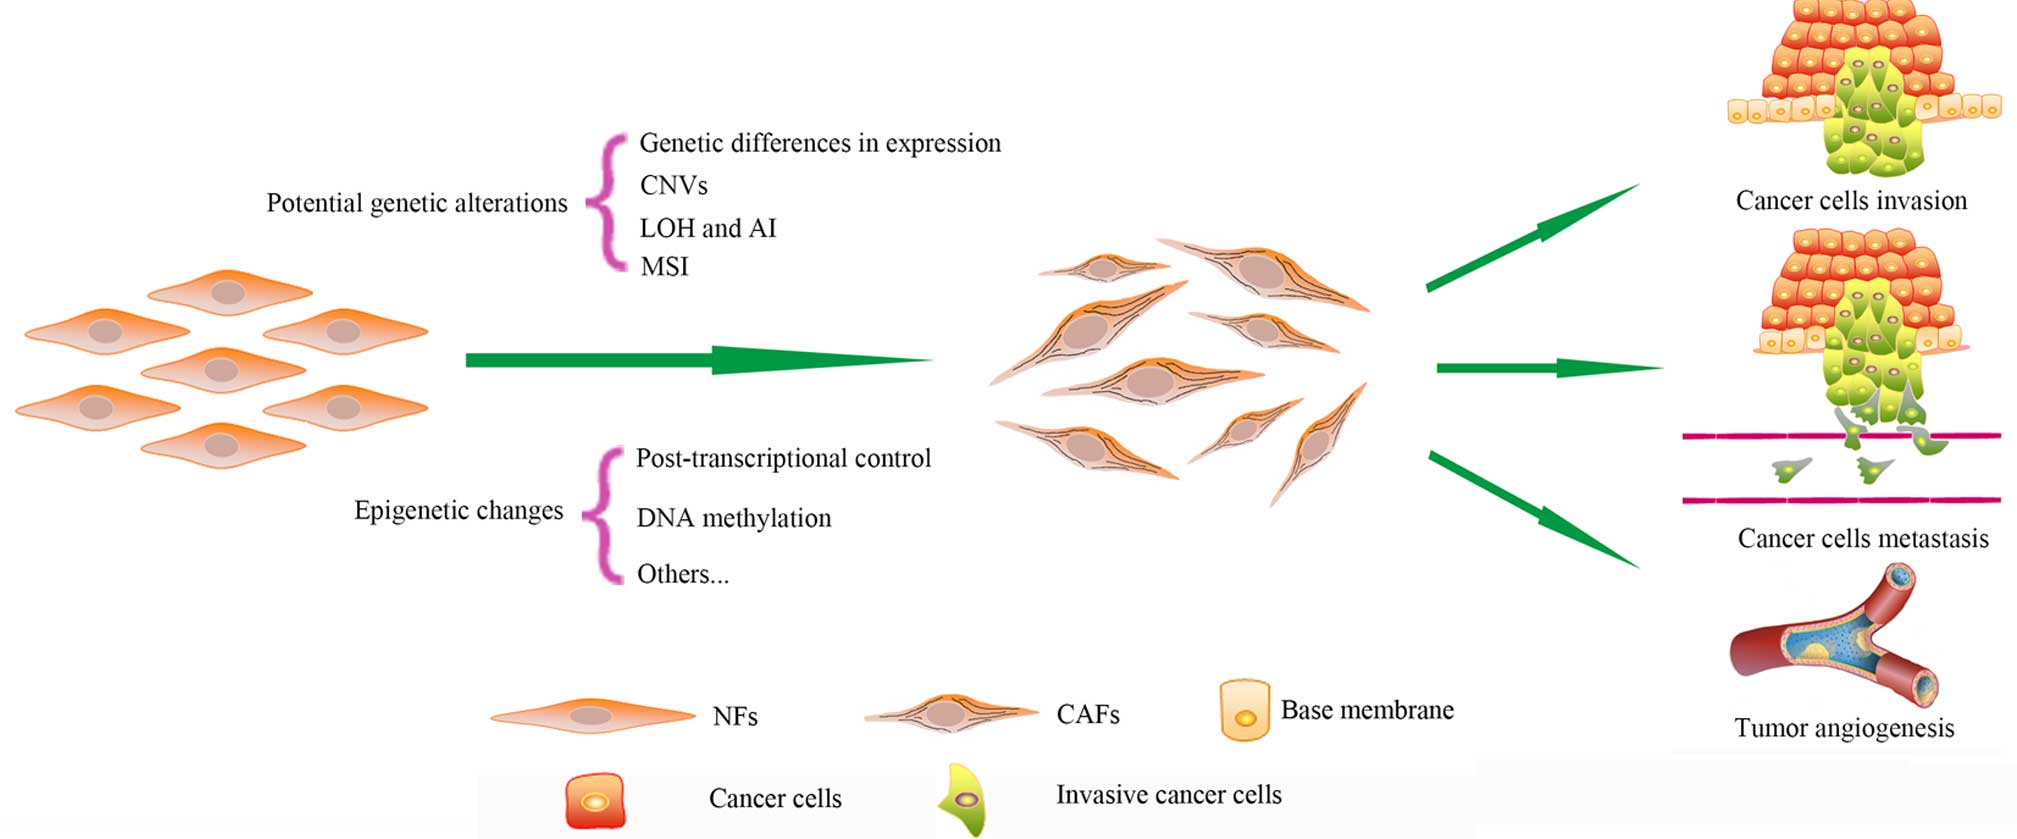 cancer cells genetic changes papillary urothelial carcinoma score